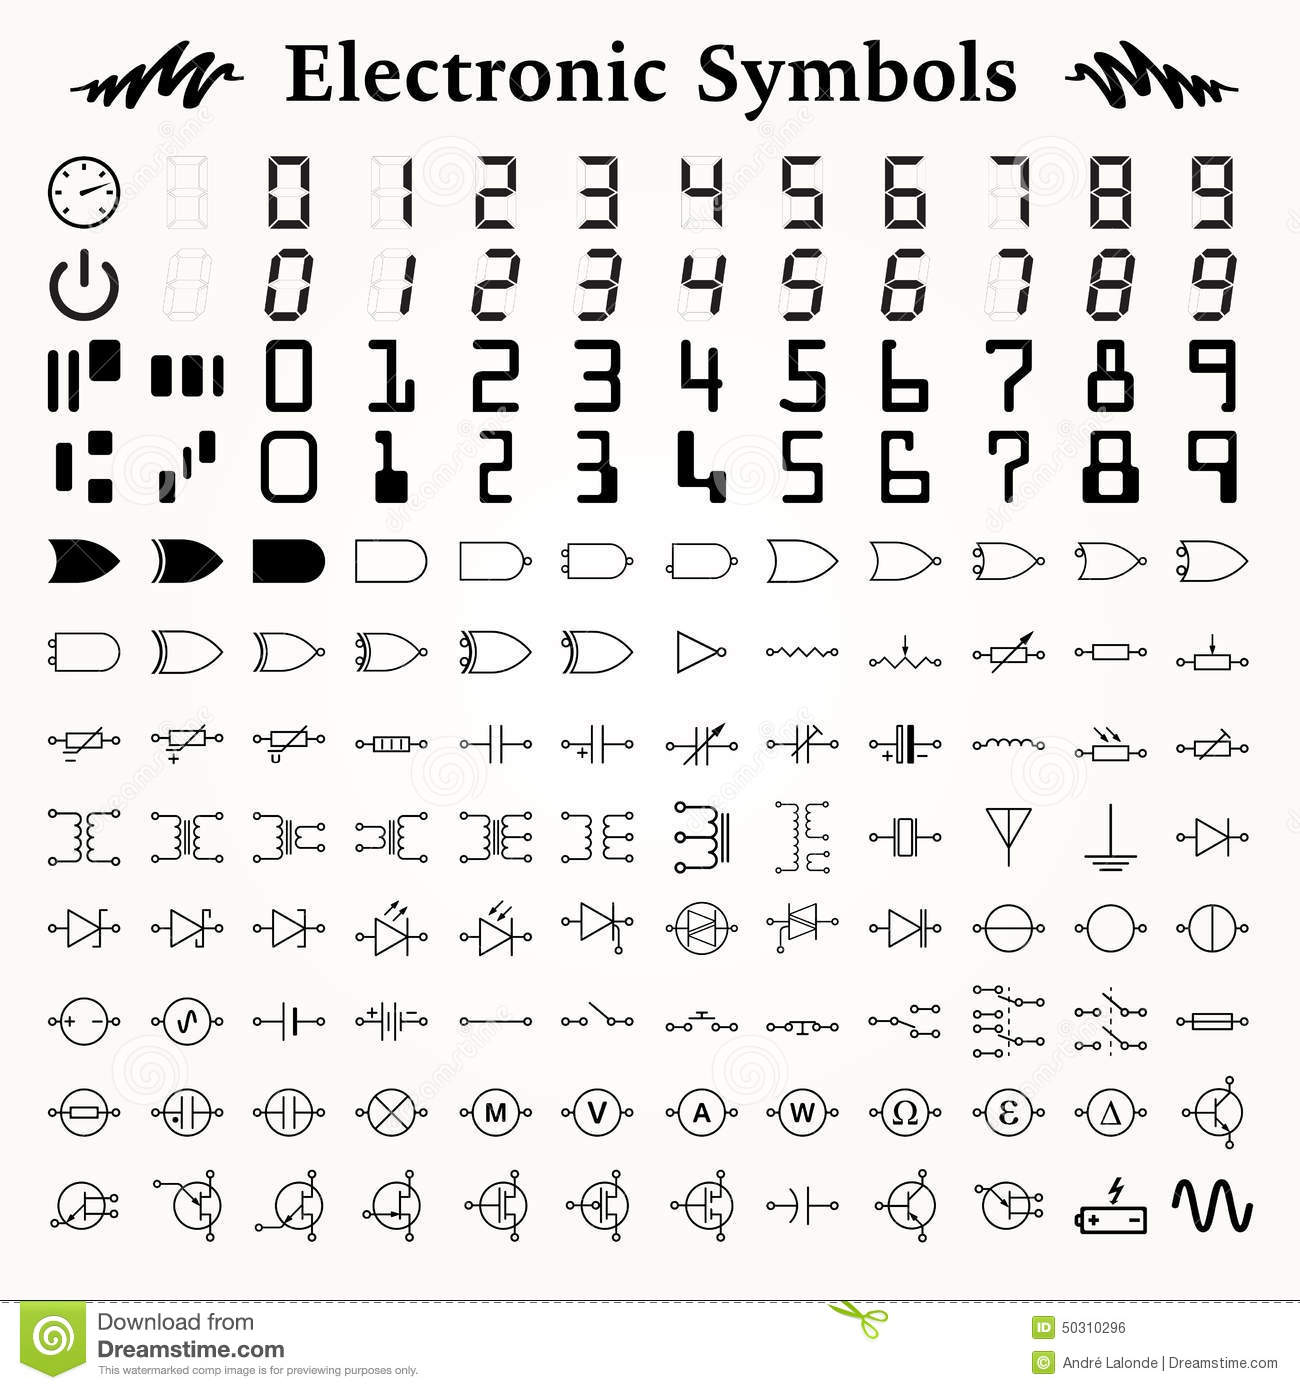 Unique Symbol Of Electronics Mold - Electrical and Wiring Diagram ...